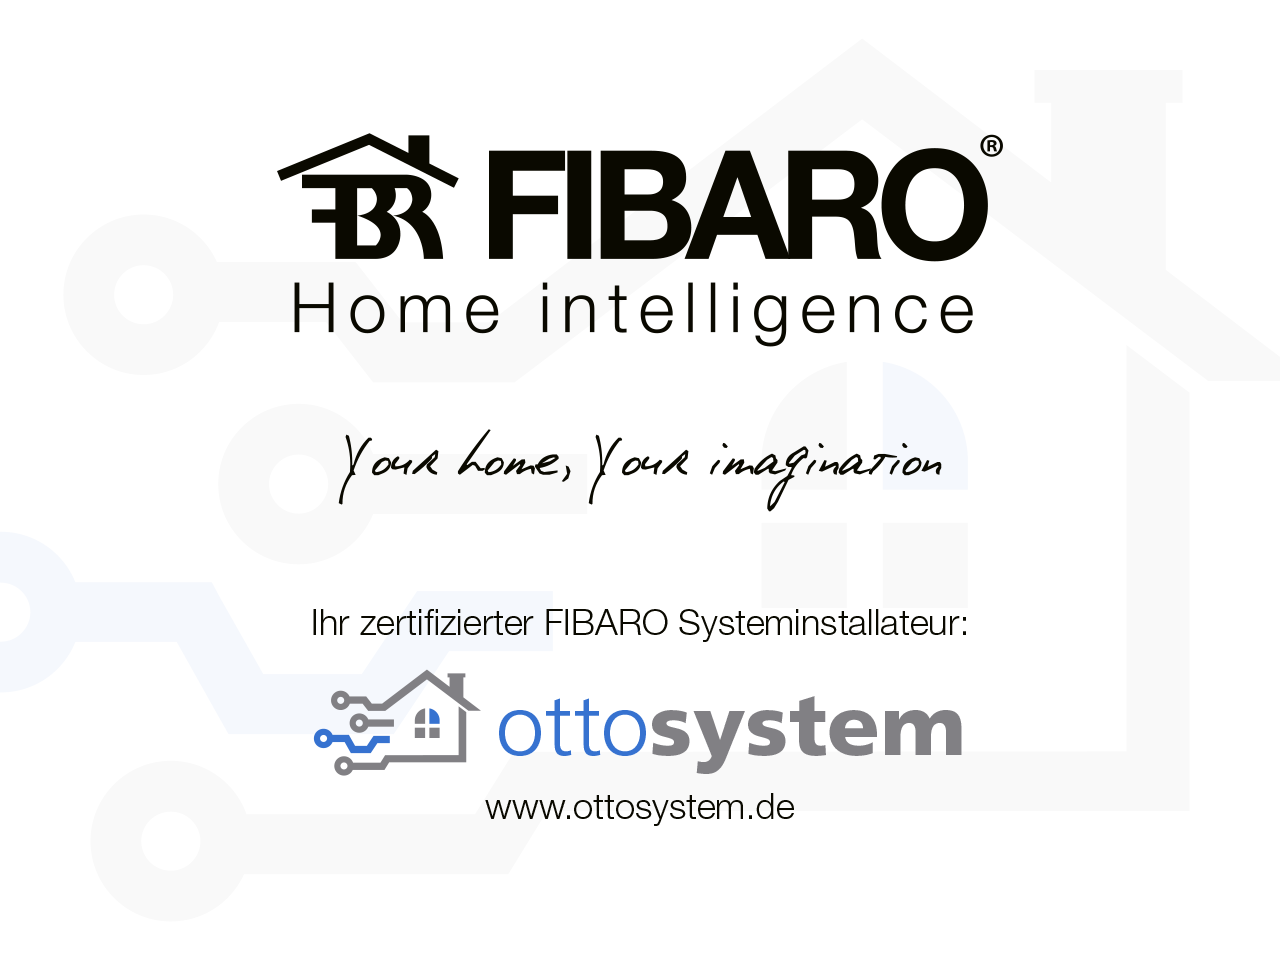 Pr-sentation_FIBARO_CO-Sensor_ottosystem-14